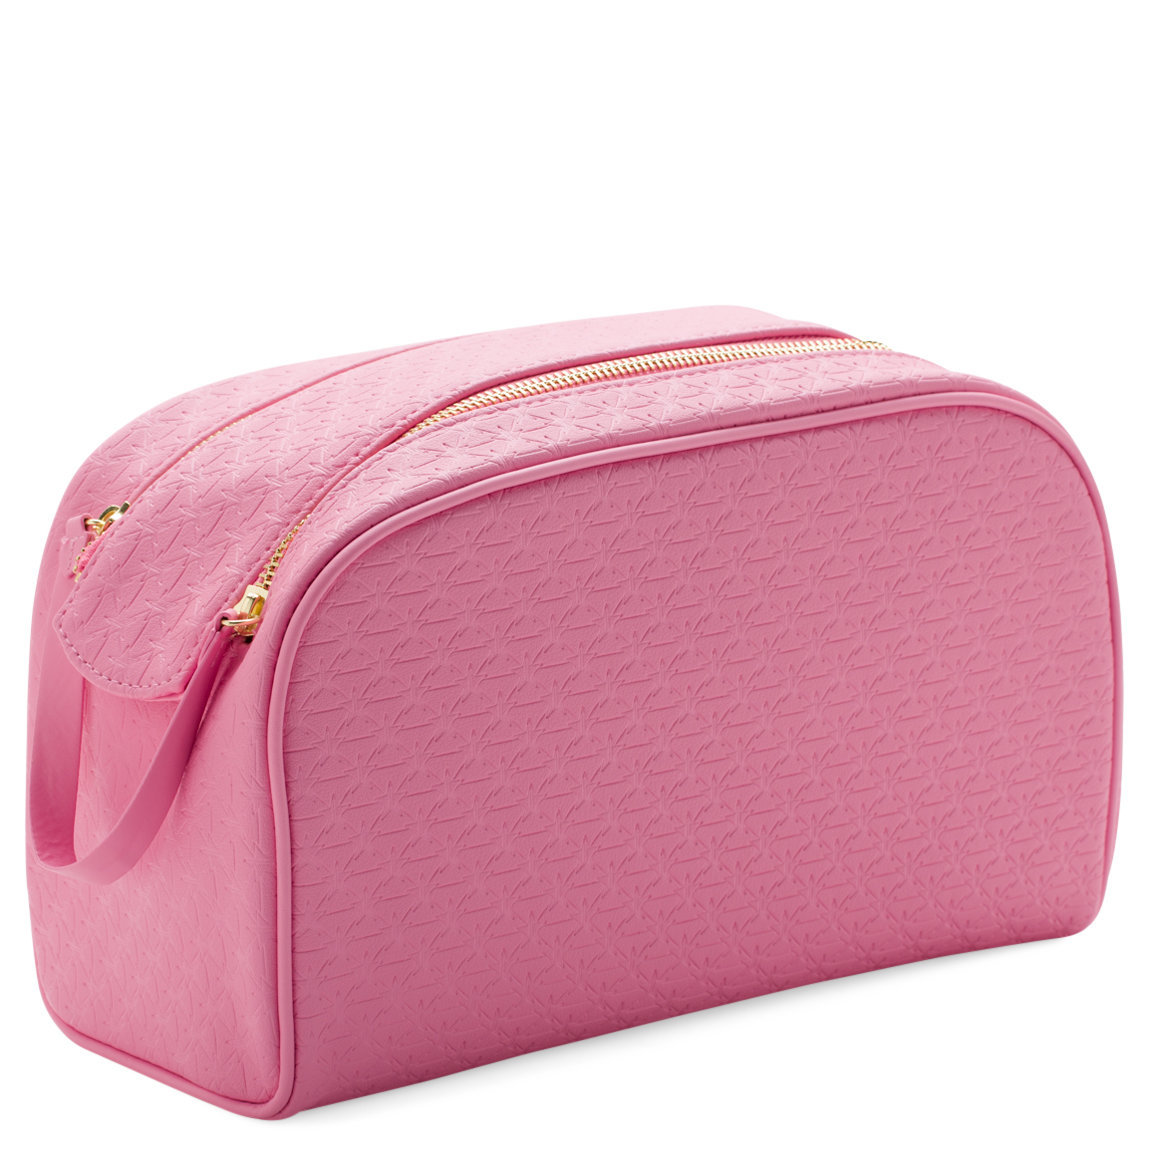 Jeffree Star Cosmetics Double Zip Makeup Bag Pink product smear.